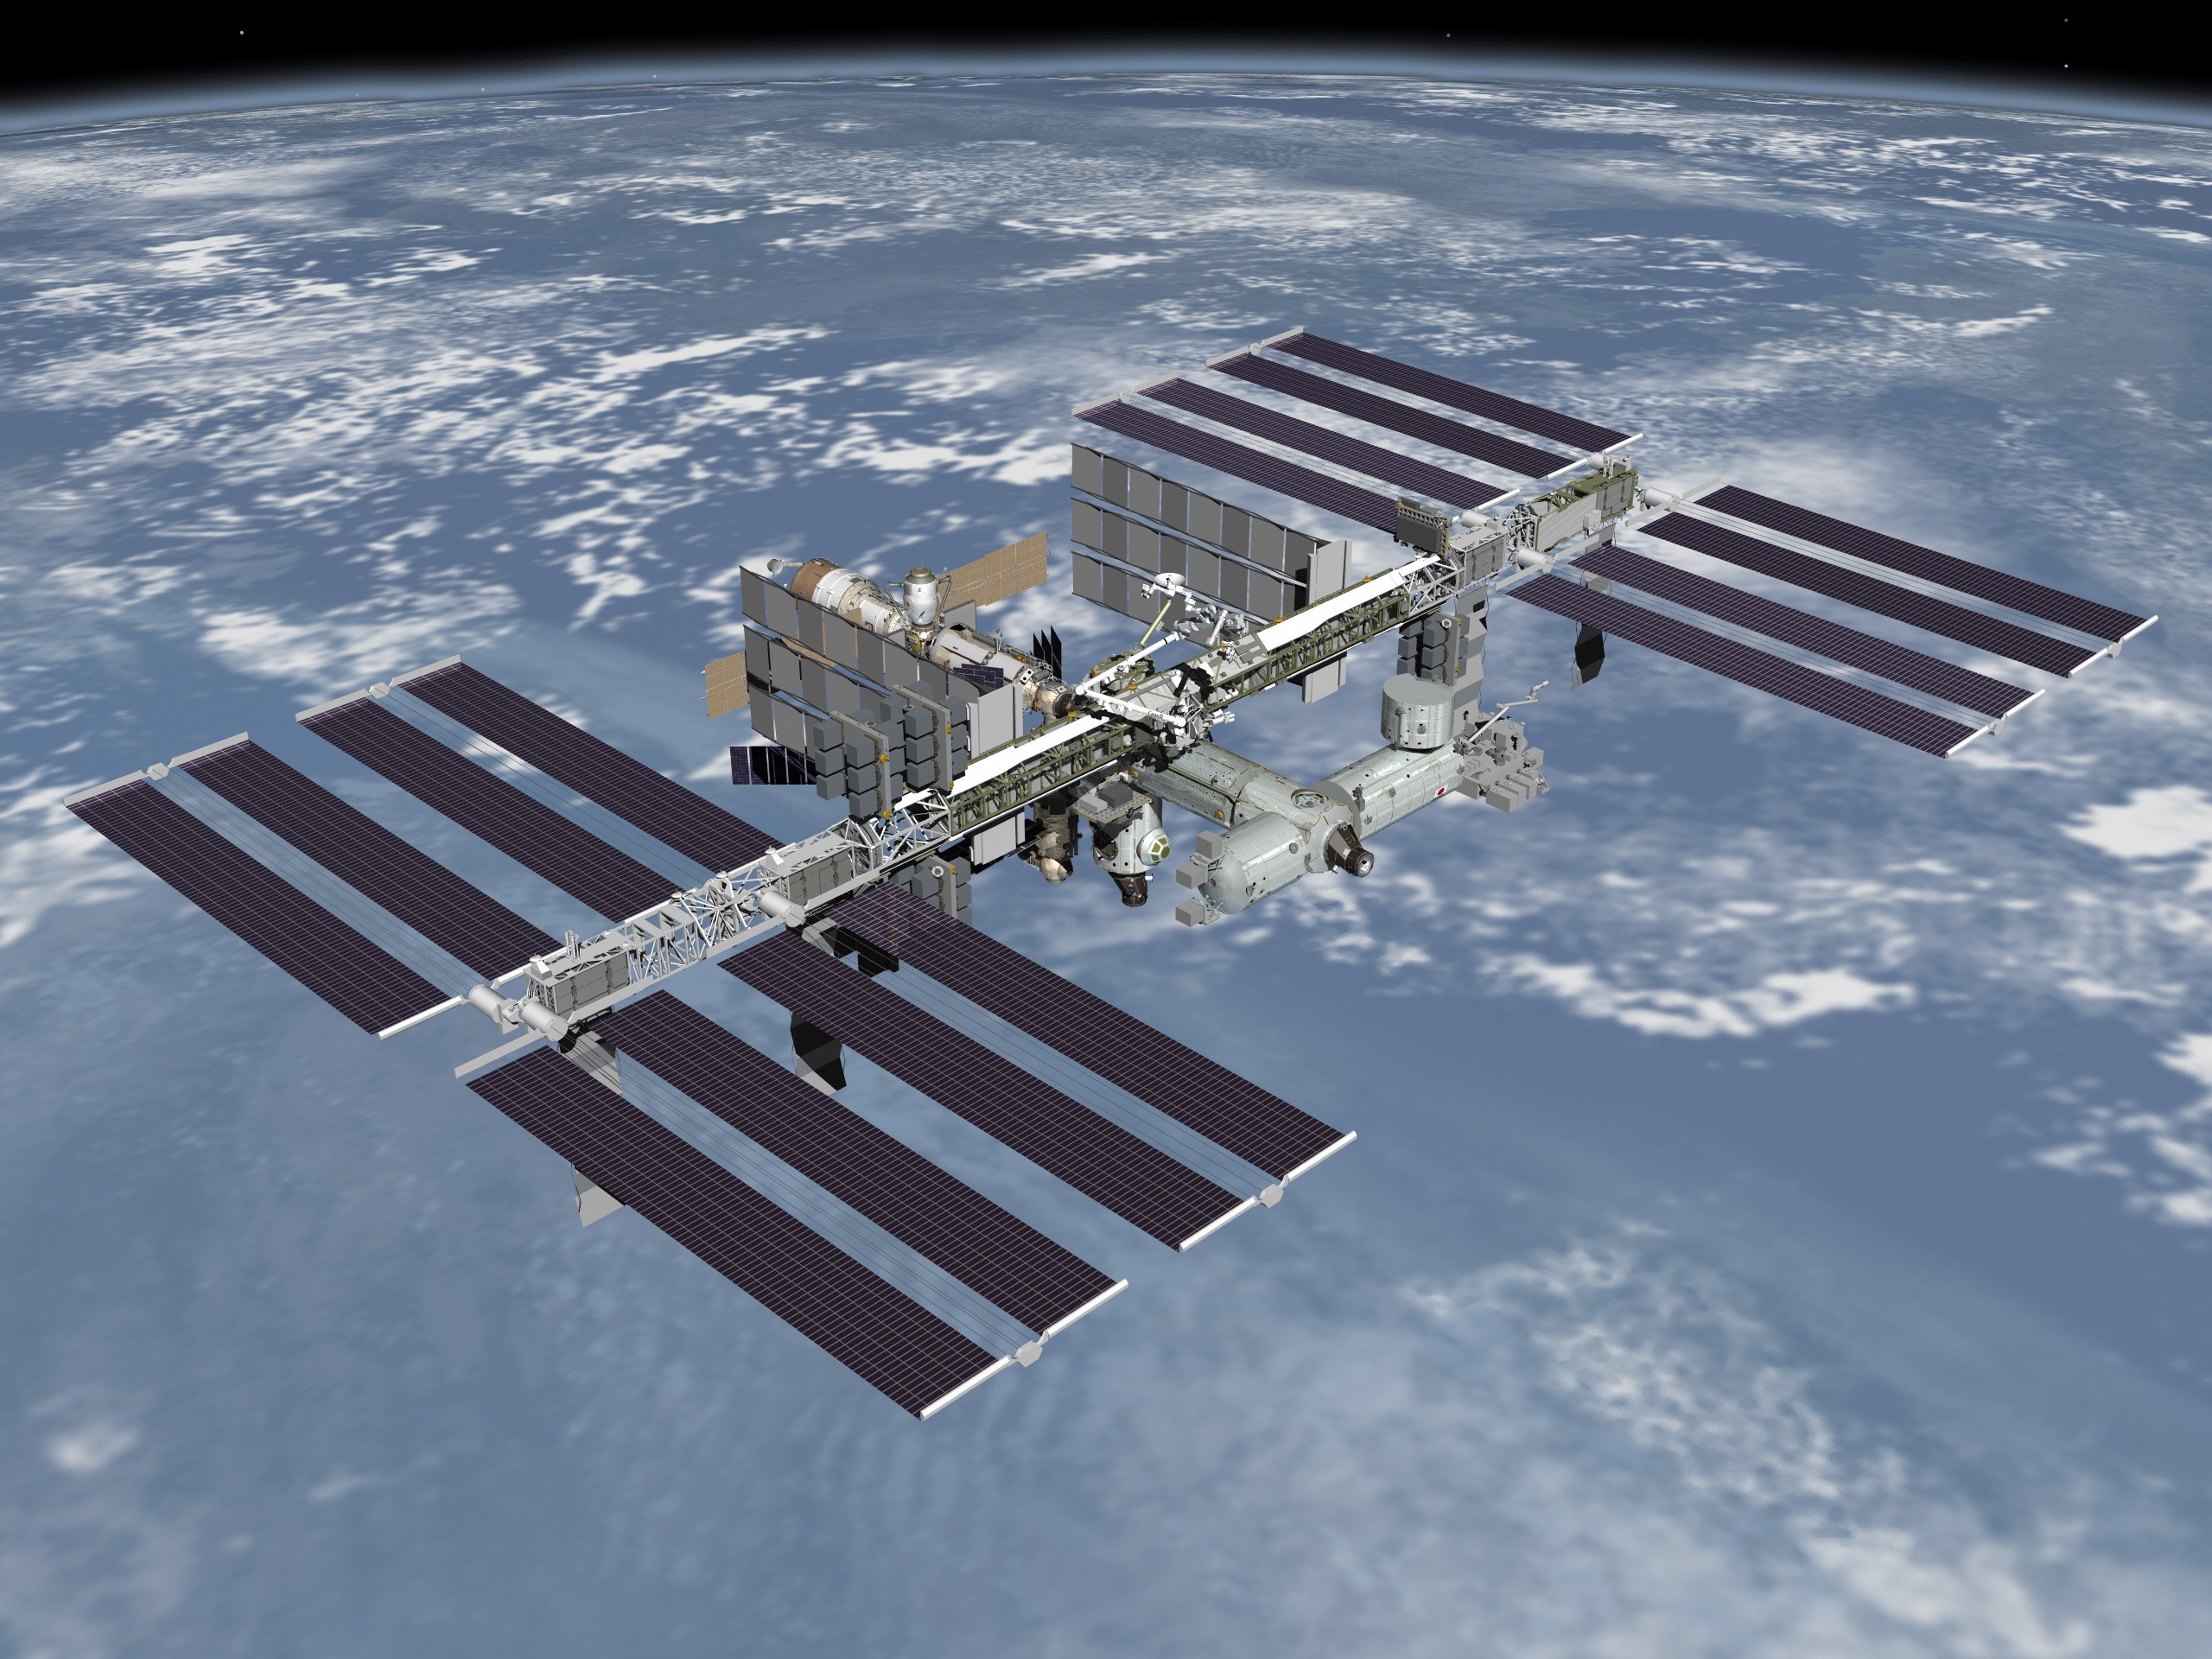 https://i1.wp.com/mediad.publicbroadcasting.net/p/wsdl/files/201410/internaitional_space_station,_nasa,gov_0.jpg